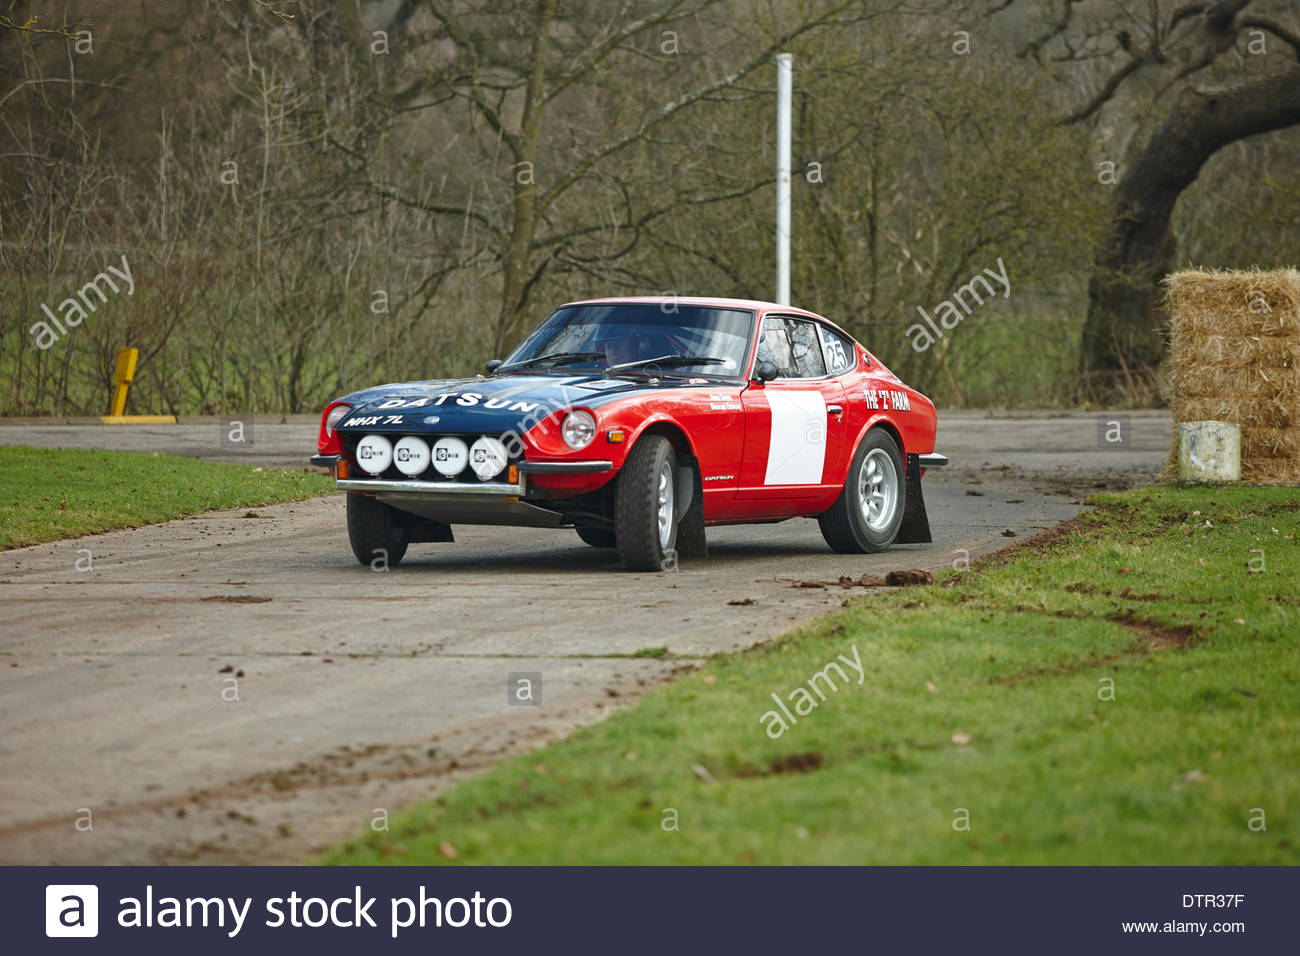 Stoneleigh Park, Warwickshire, UK. 21st Feb, 2014. Datsun 240Z rally ...